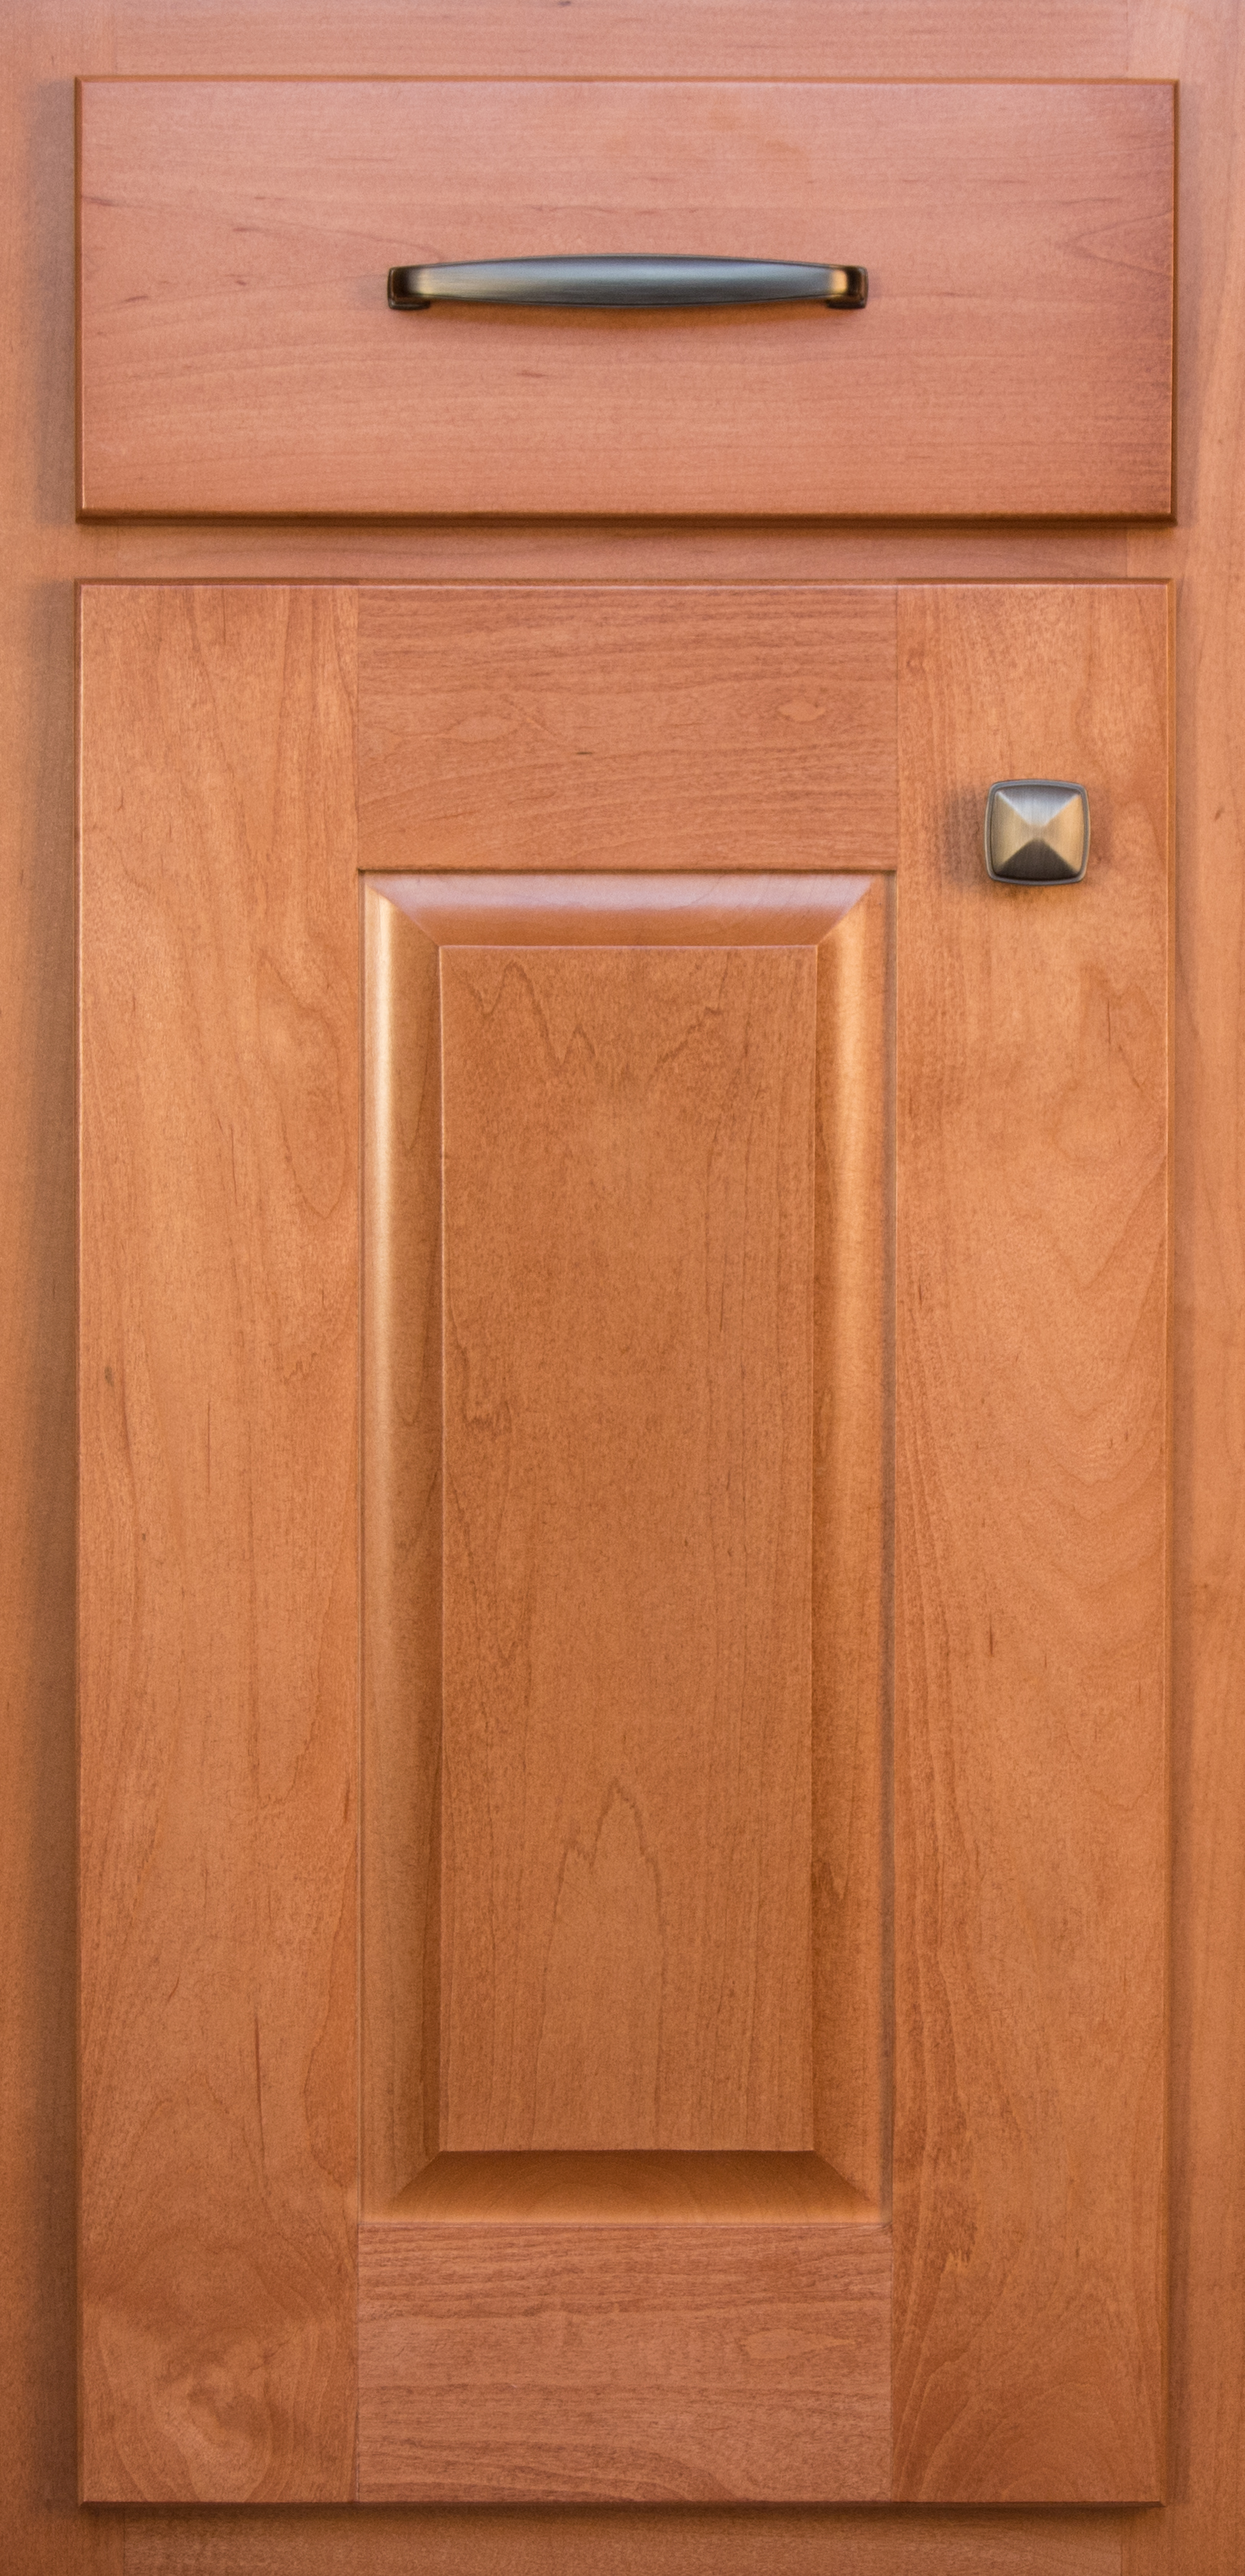 A Square Wide Rail Door Style, That Creates A More Contemporary Design That  Is Clean And Simple.